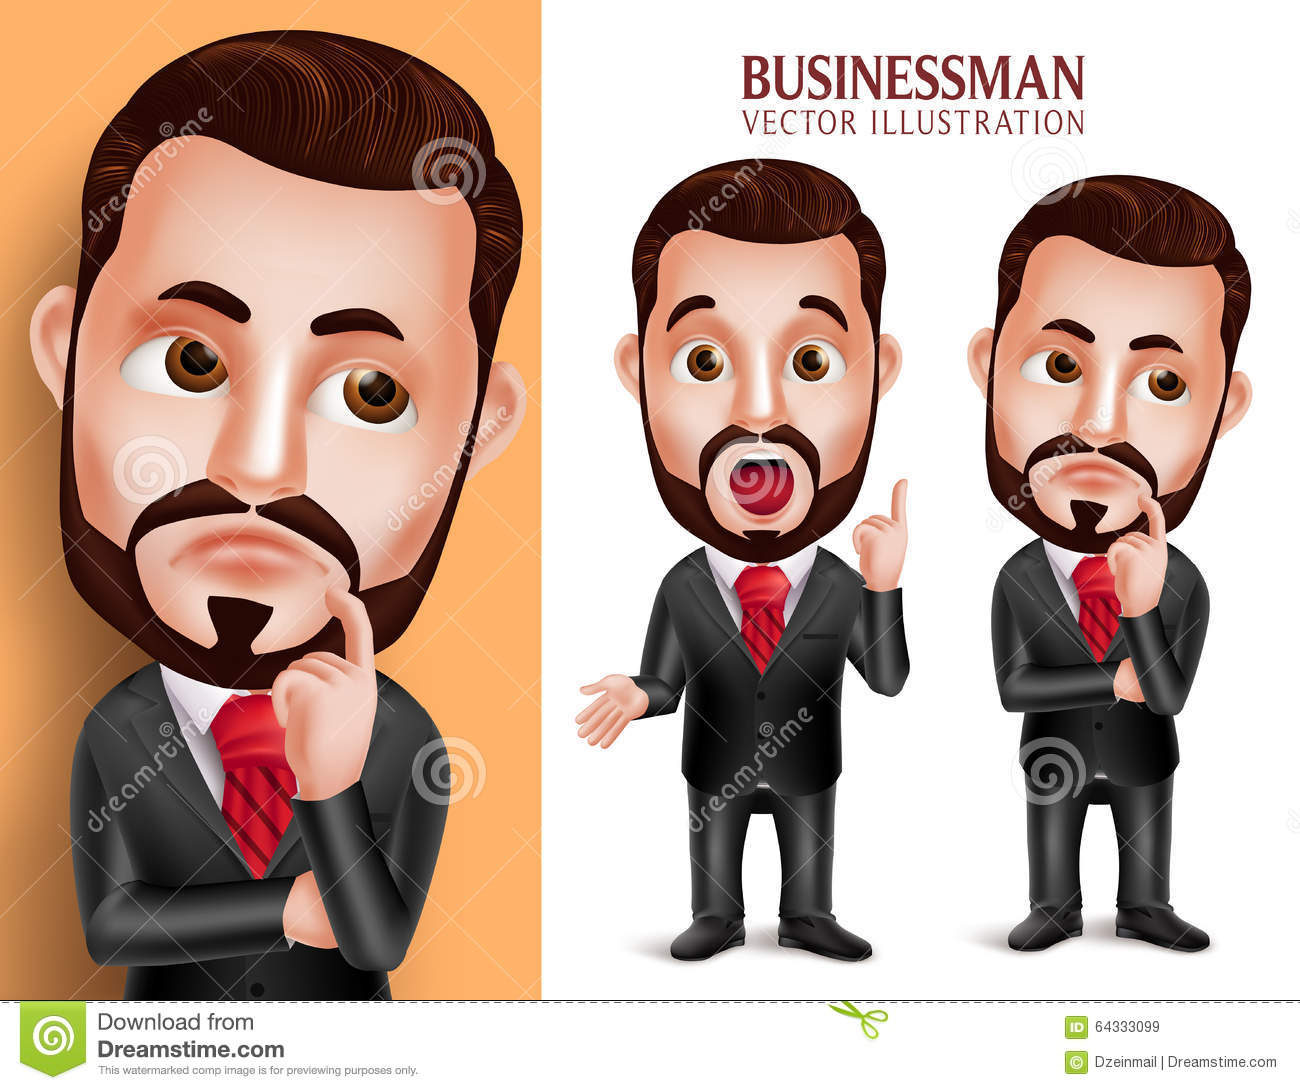 Professional Business Man Vector Character in Attractive Corporate Attire Thinking Idea